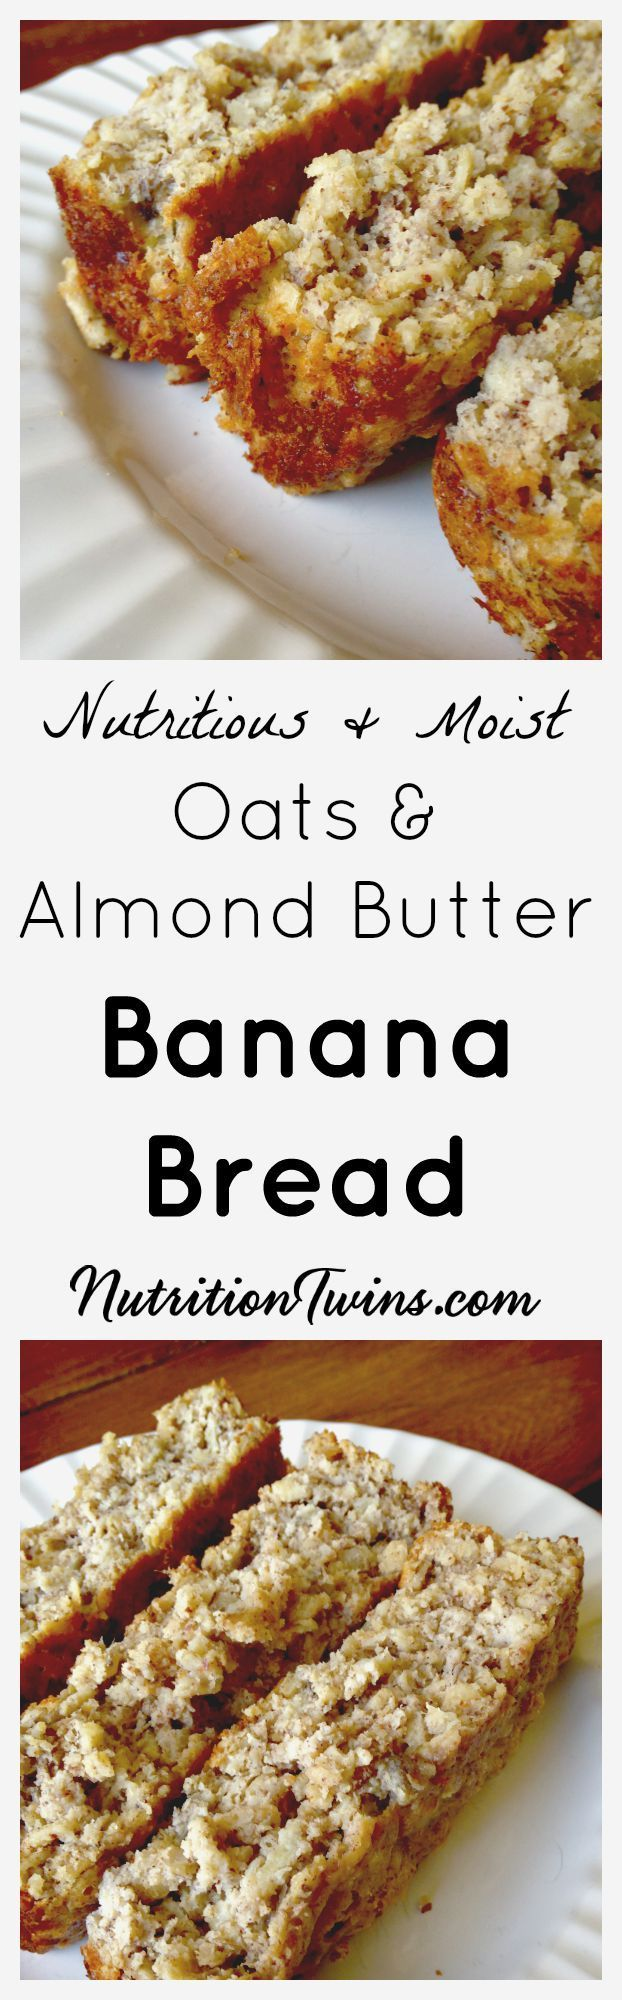 #wwwnutritiontwin #newsletter #satisfying #breakfast #nutrition #calories #protein #dessert #fitness...